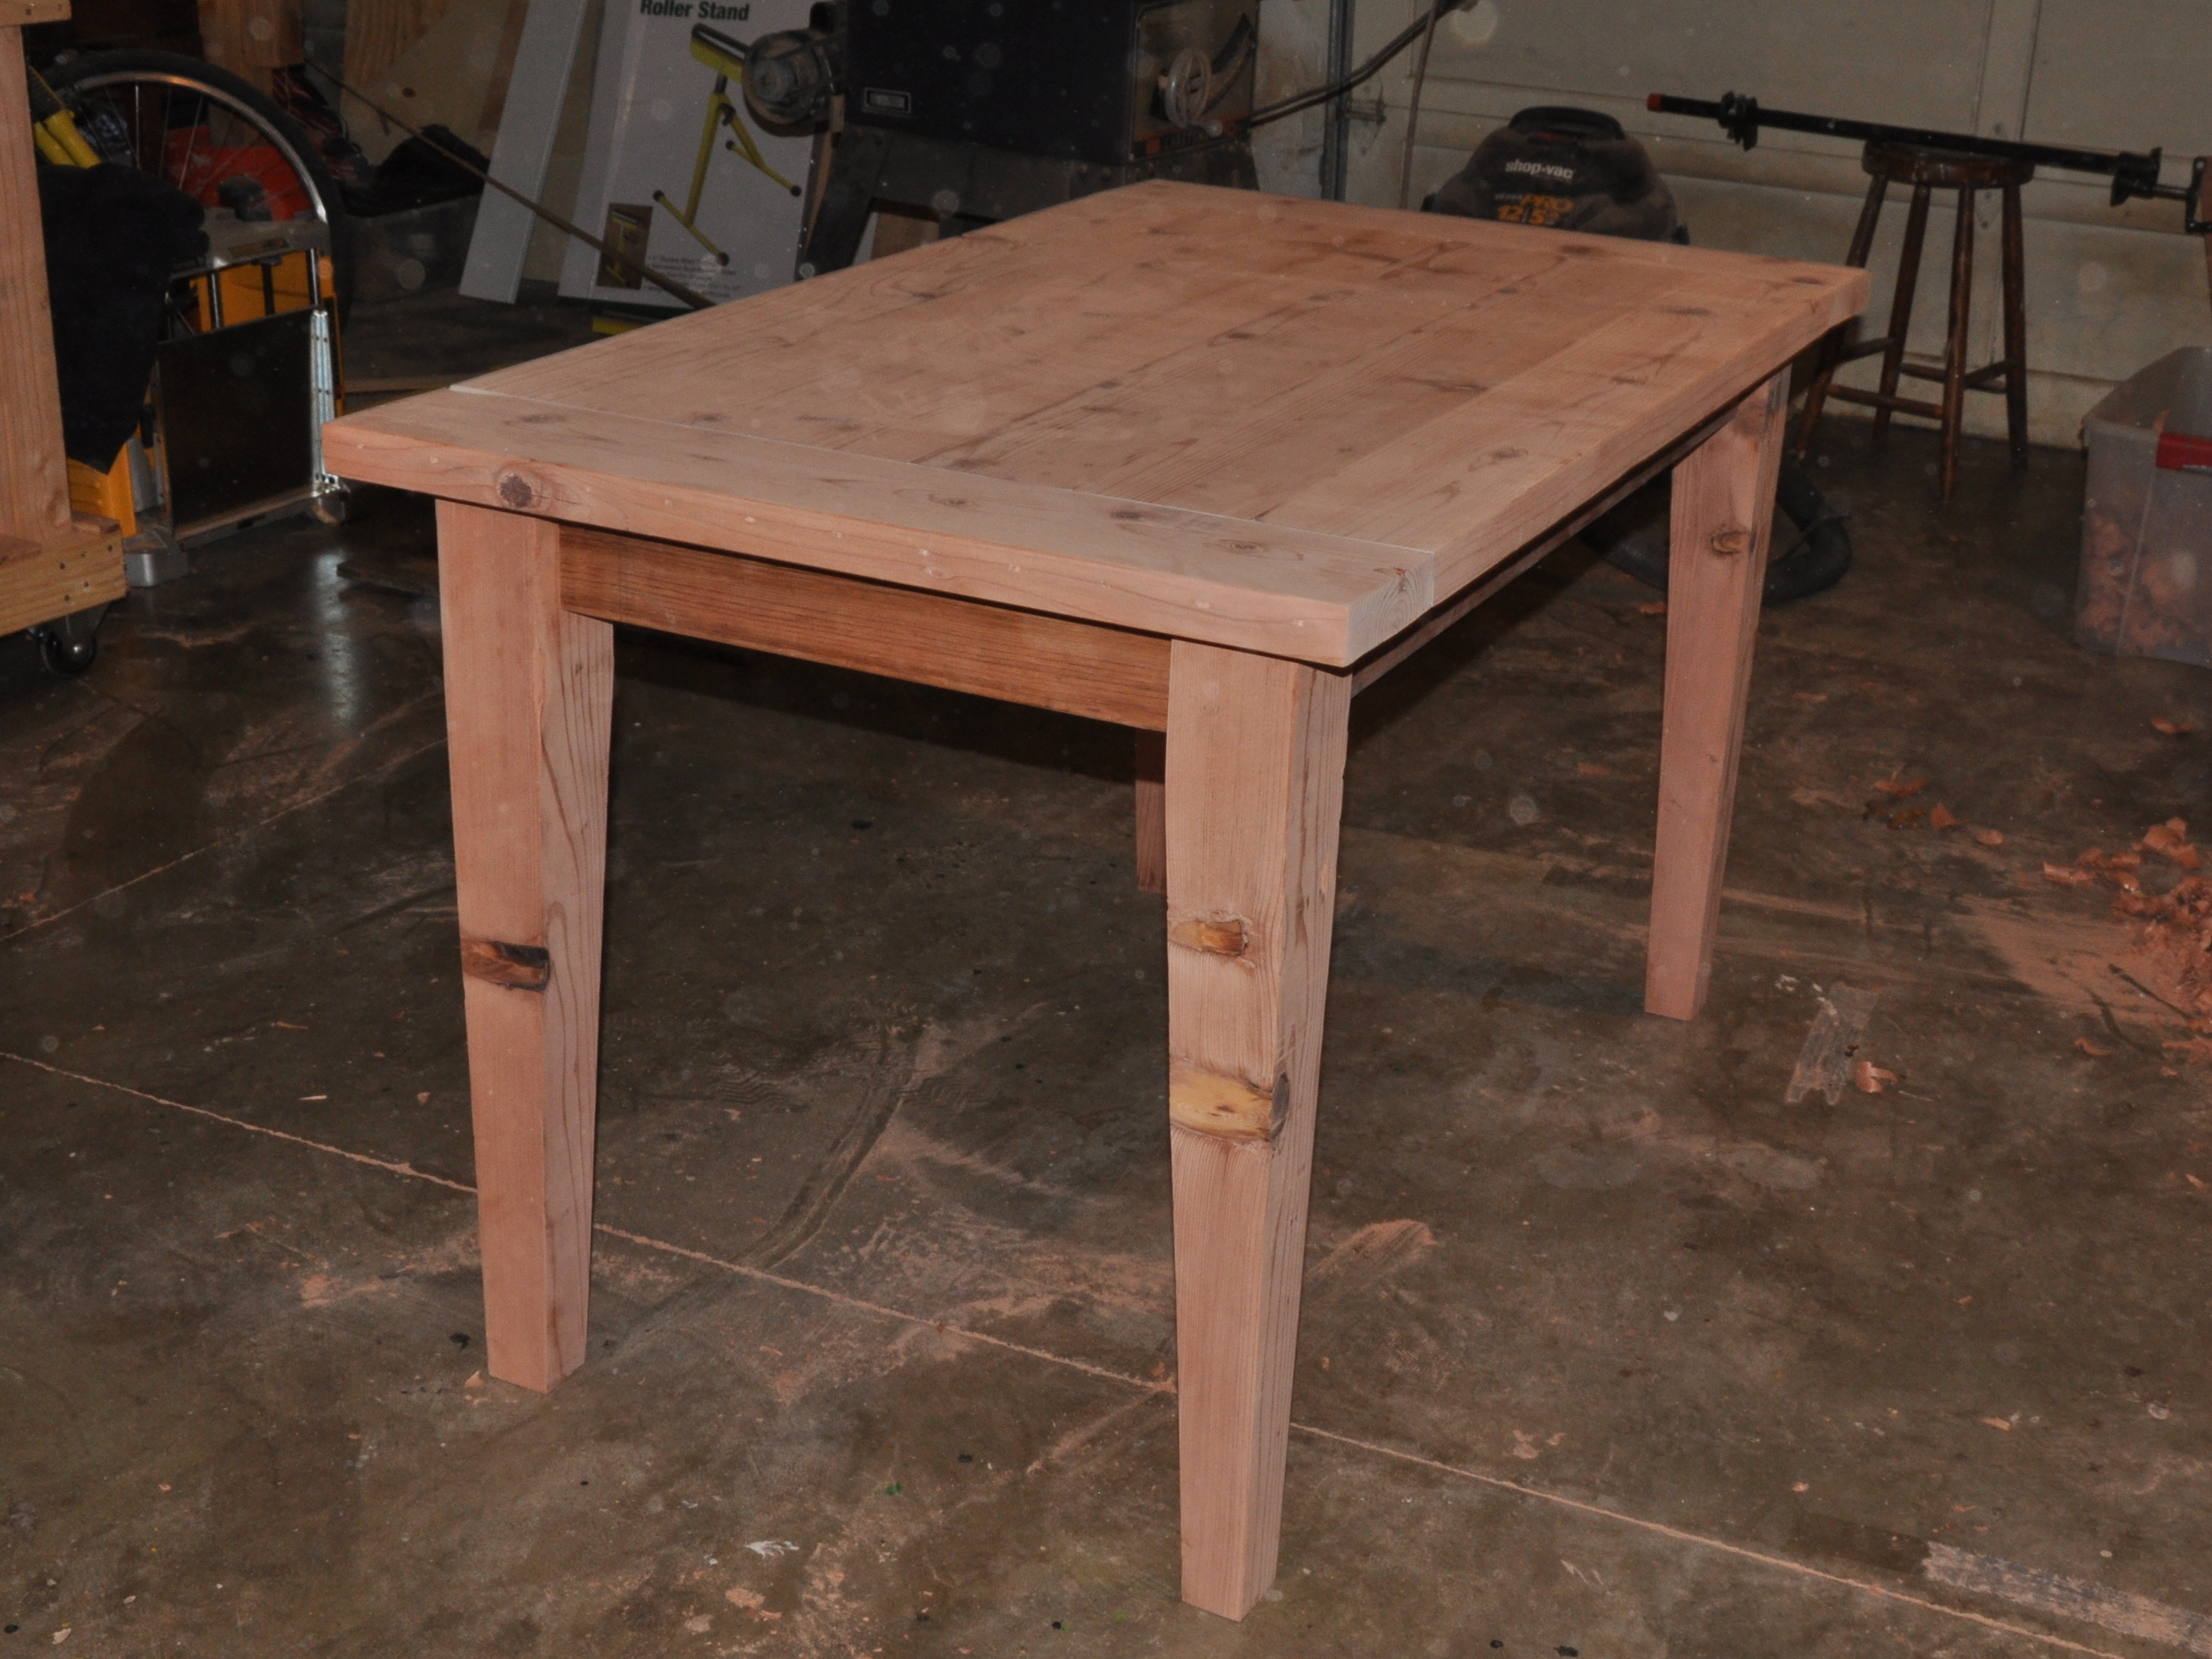 How to make a sofa table from 1 x 6 lumber - Wooden Table